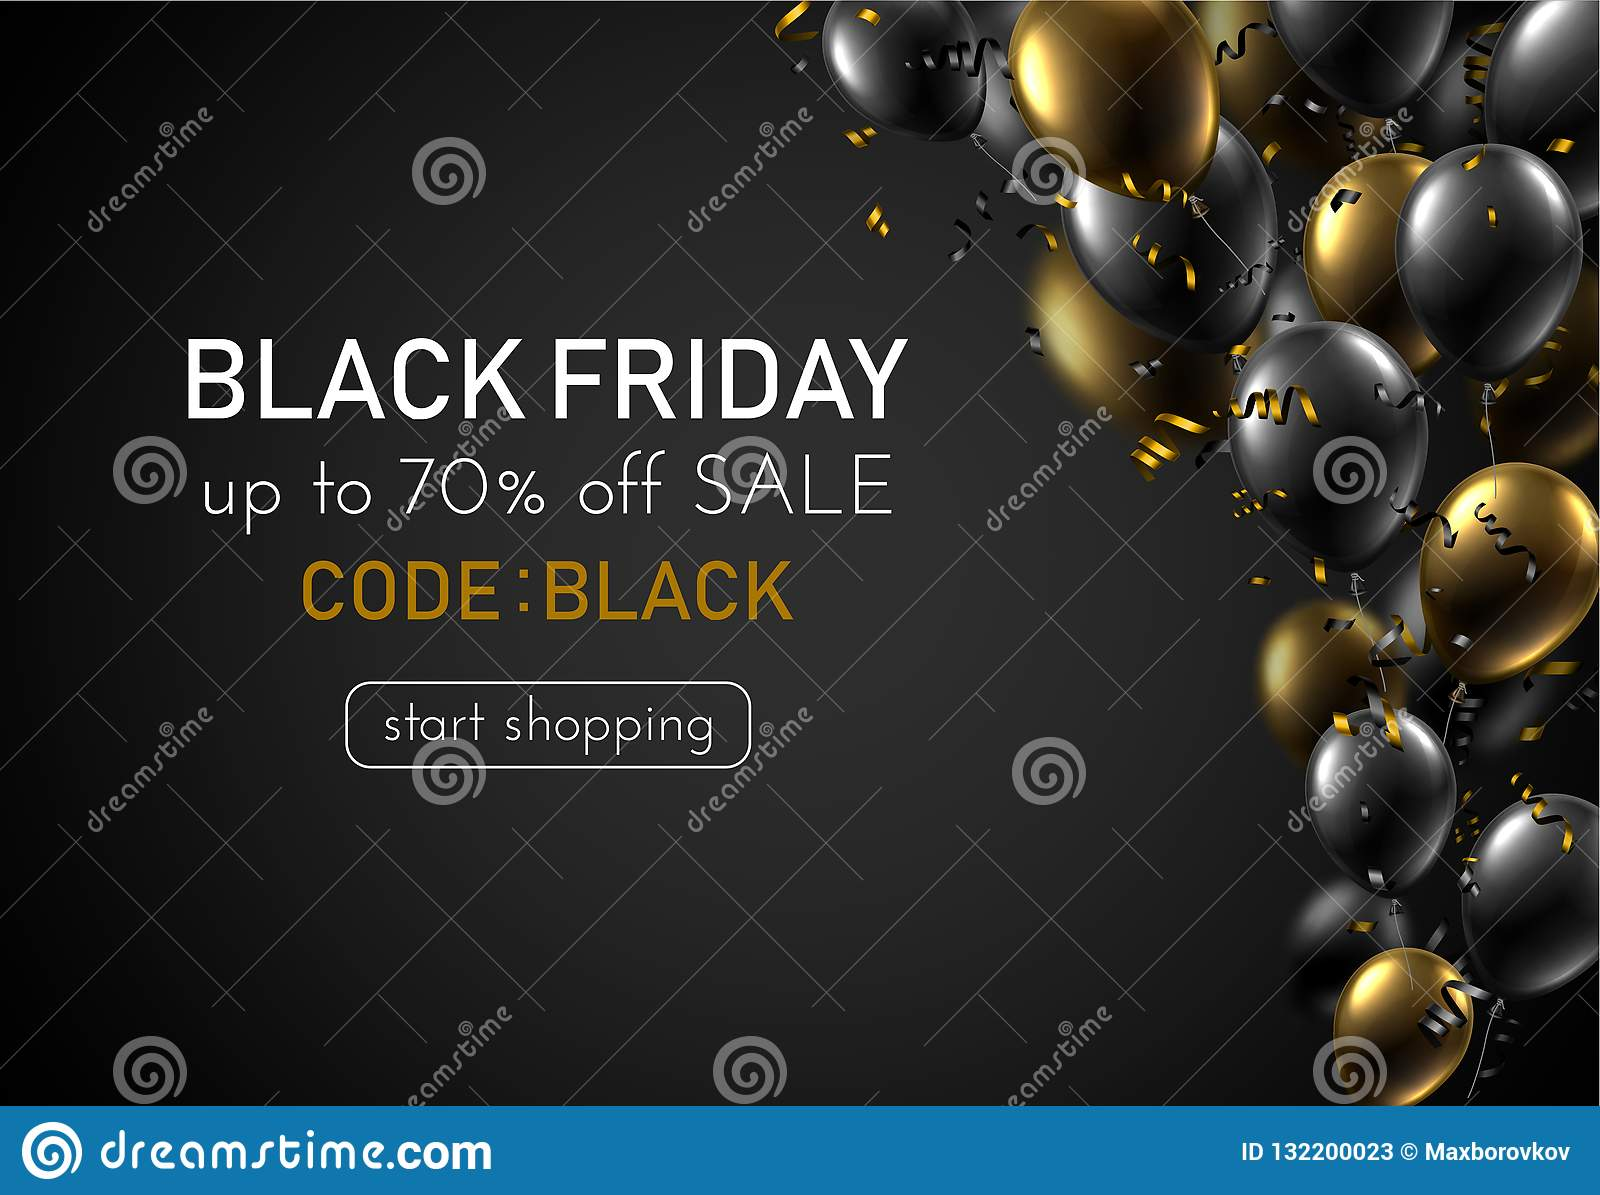 Black Friday Sale Promotion Poster With Shiny Balloons And